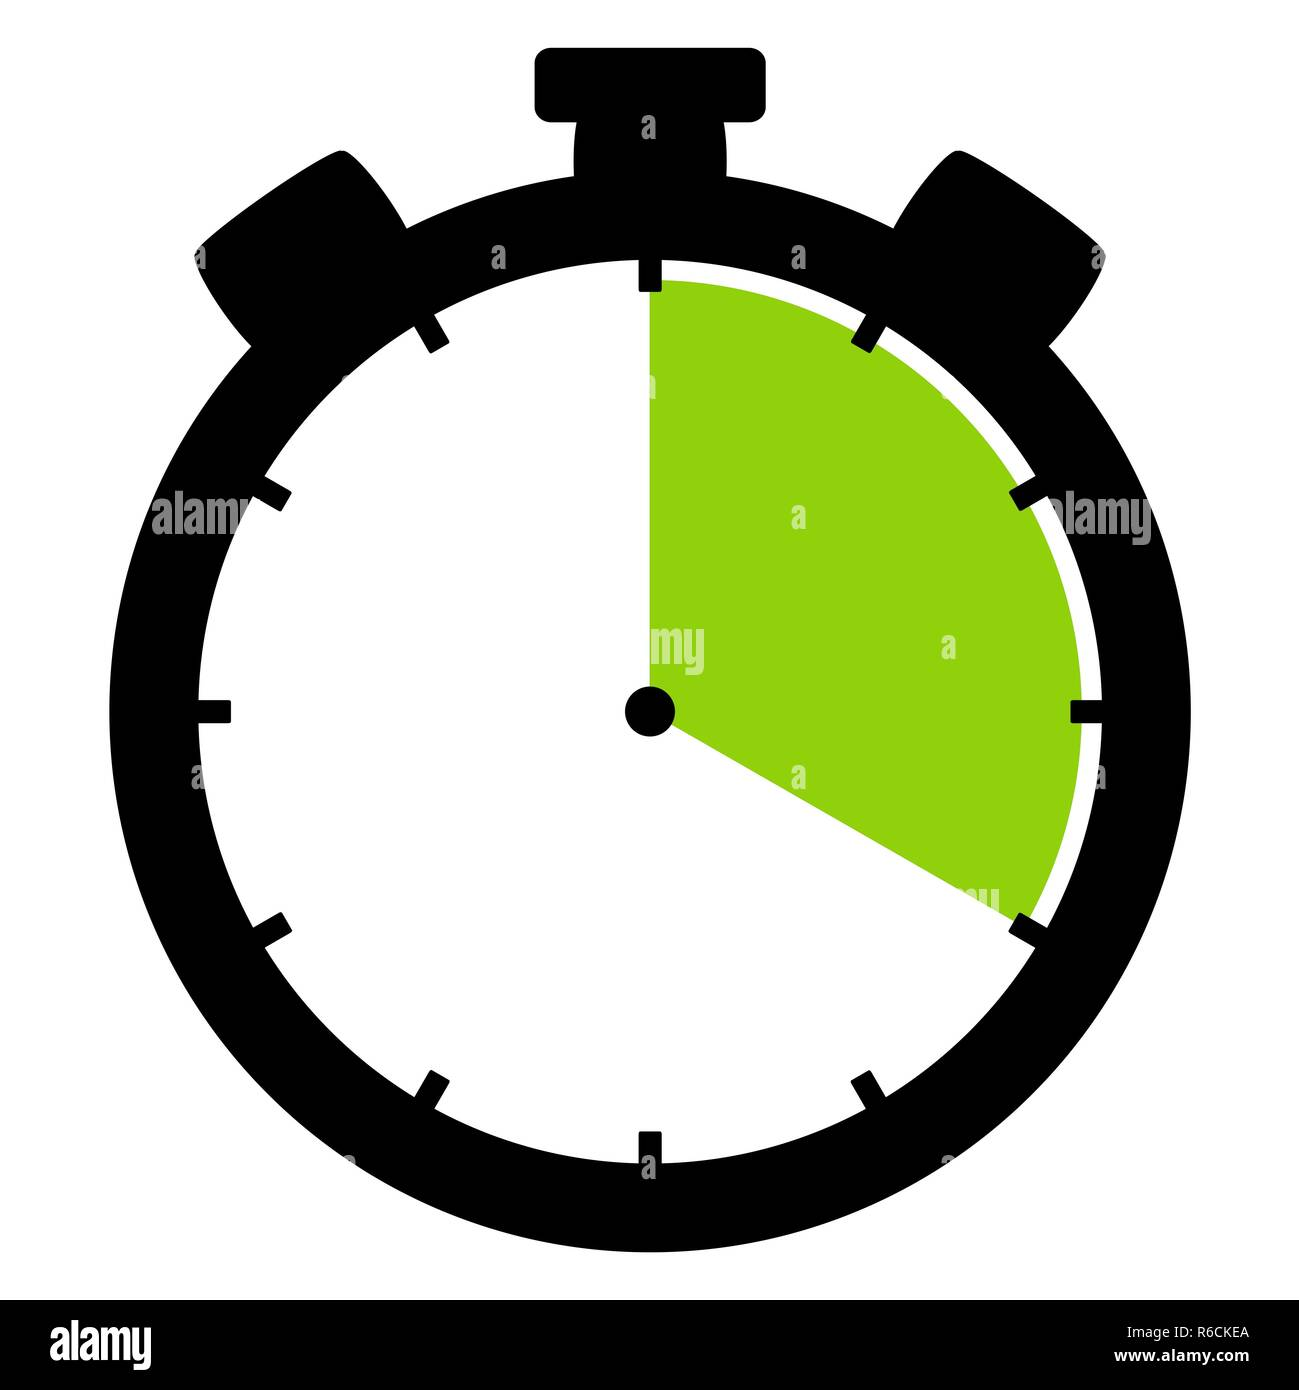 stopwatch icon: 20 minutes 20 seconds or 4 hours - Stock Image